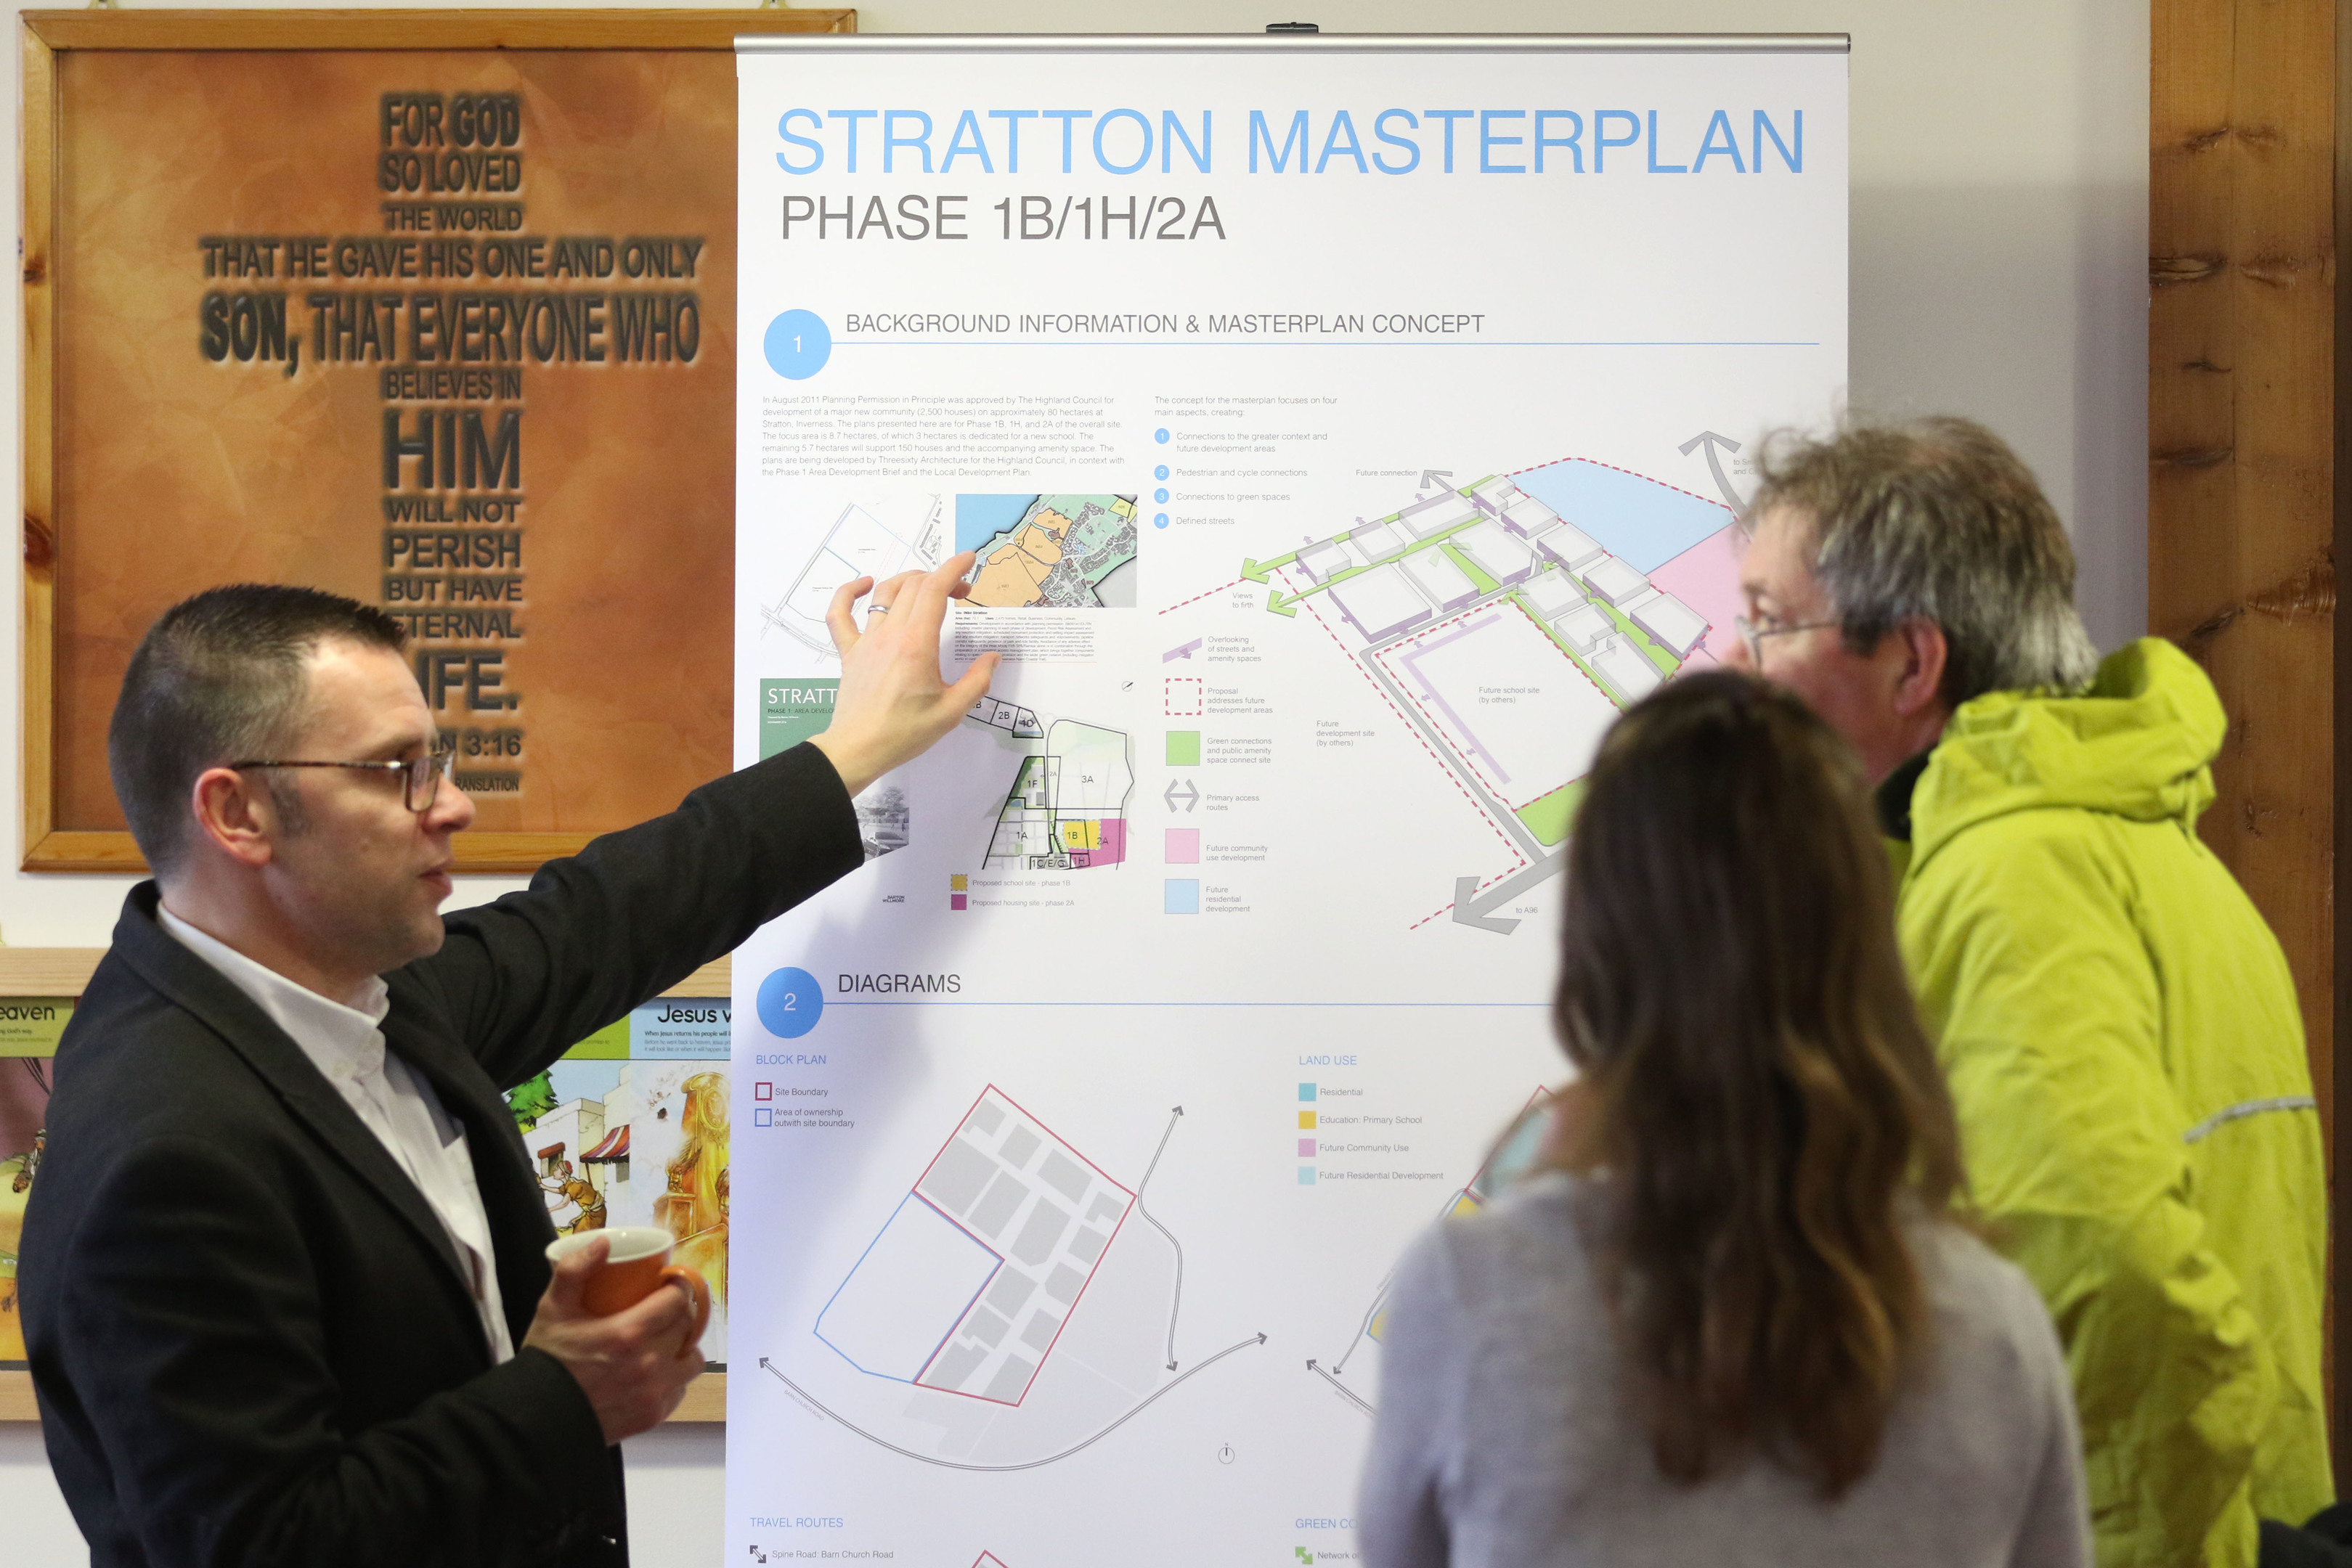 Plans for a new housing development near Smithton in Inverness on display at Smithton Free Church. This pic: Rory Kellett and Skye Sturm from Threesixty Architecture discussed the plans with Martin MacLeod from nearby Balloch